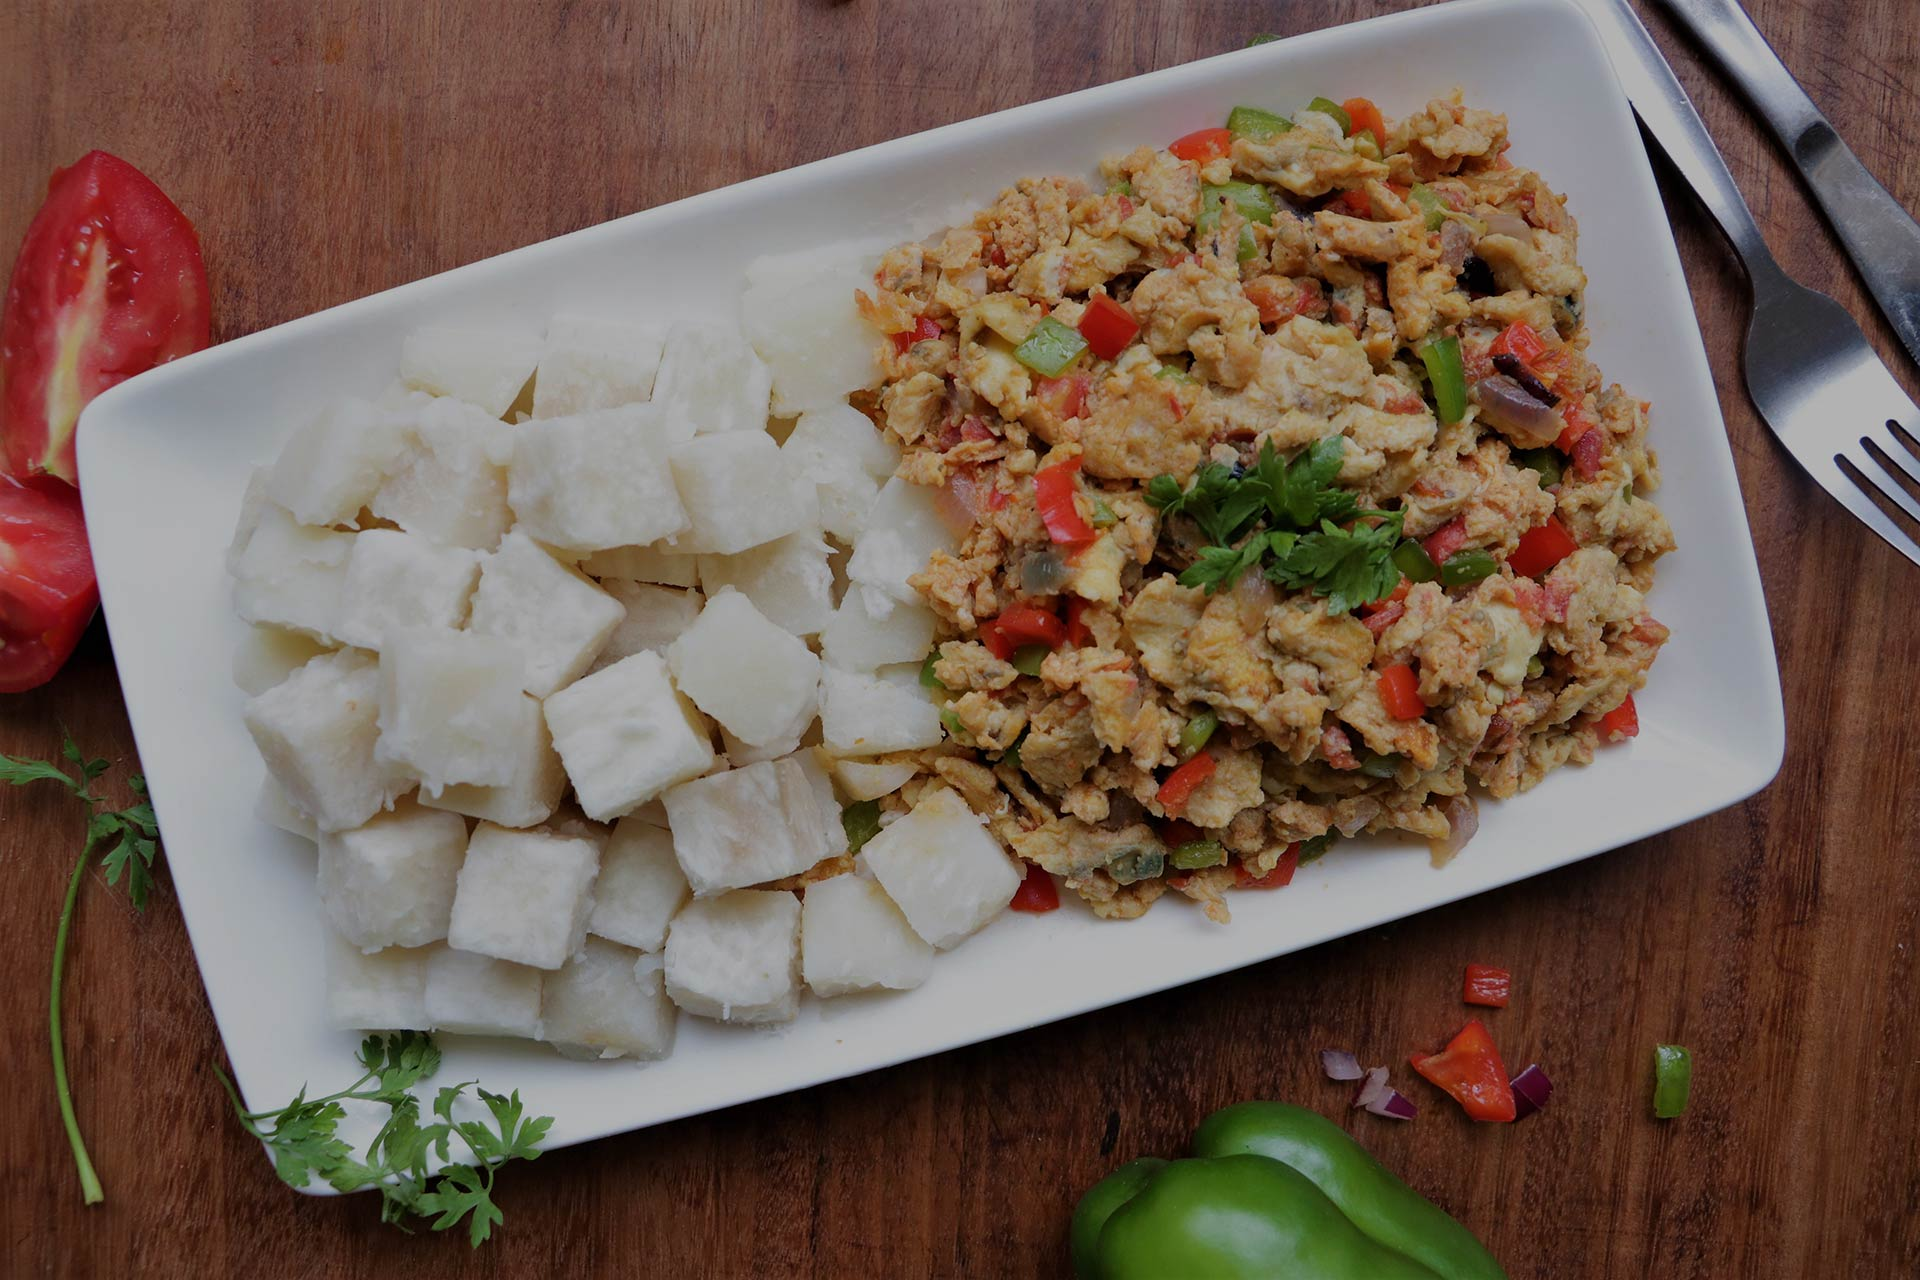 Spicy Egg Sauce with Yam